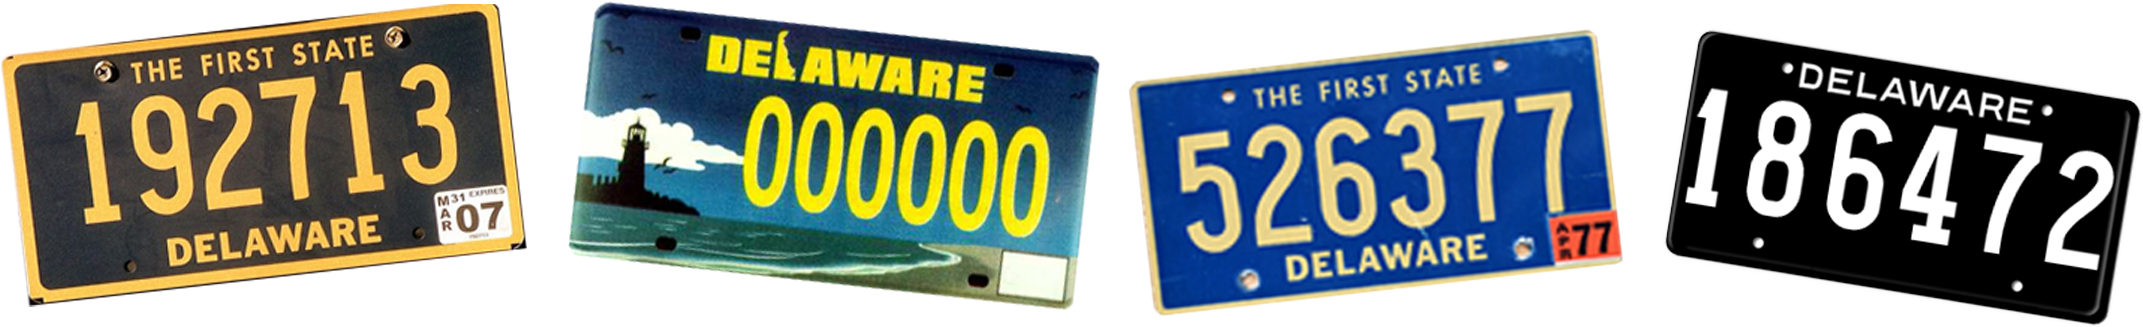 Decorative vintage delaware license plates